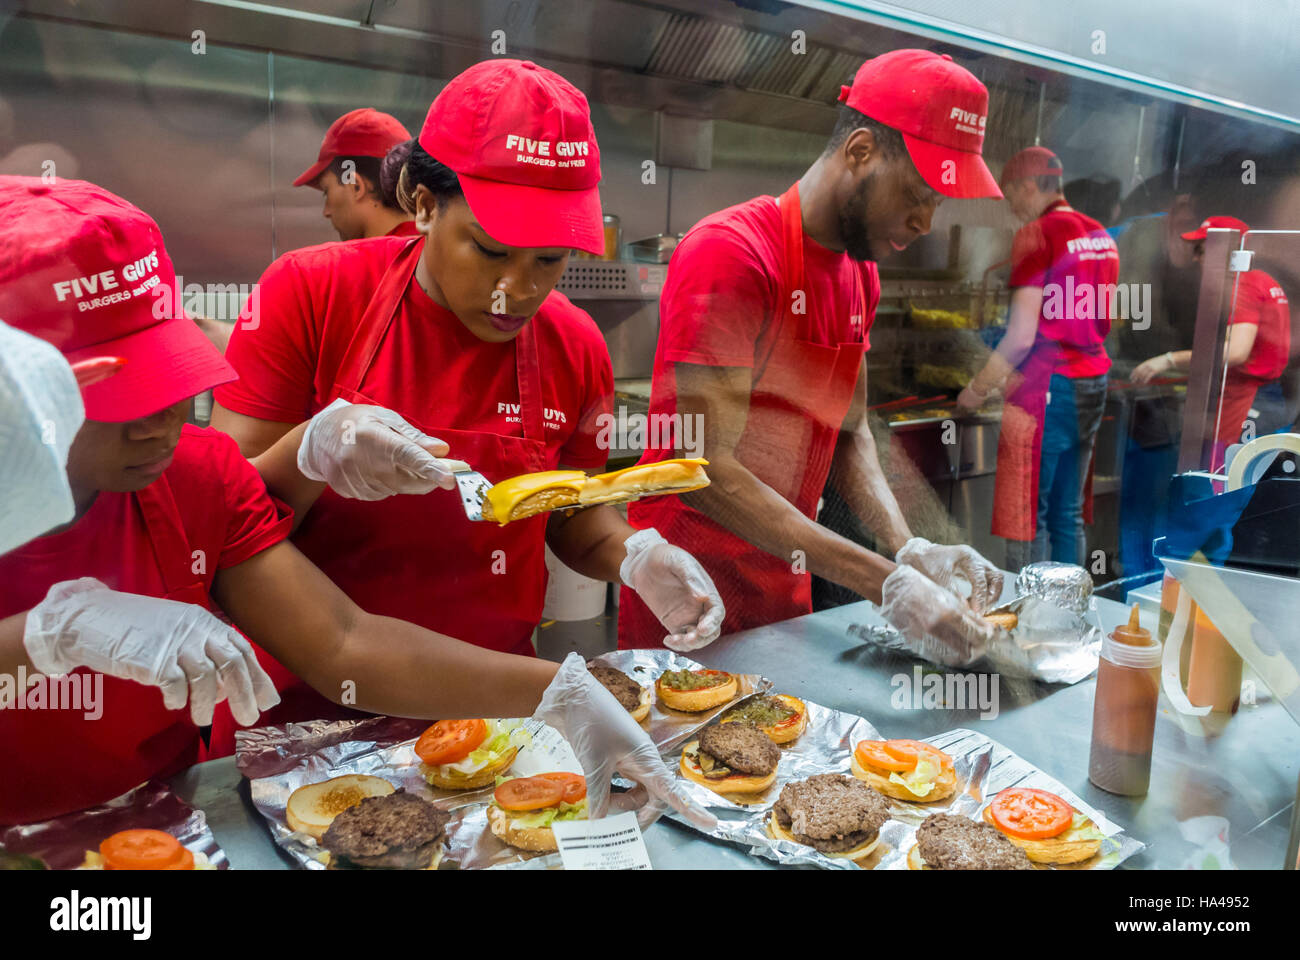 Paris, France, Group of Diverse French People, Teenagers, Working in Kitchen inside American Fast Food Restaurant, - Stock Image